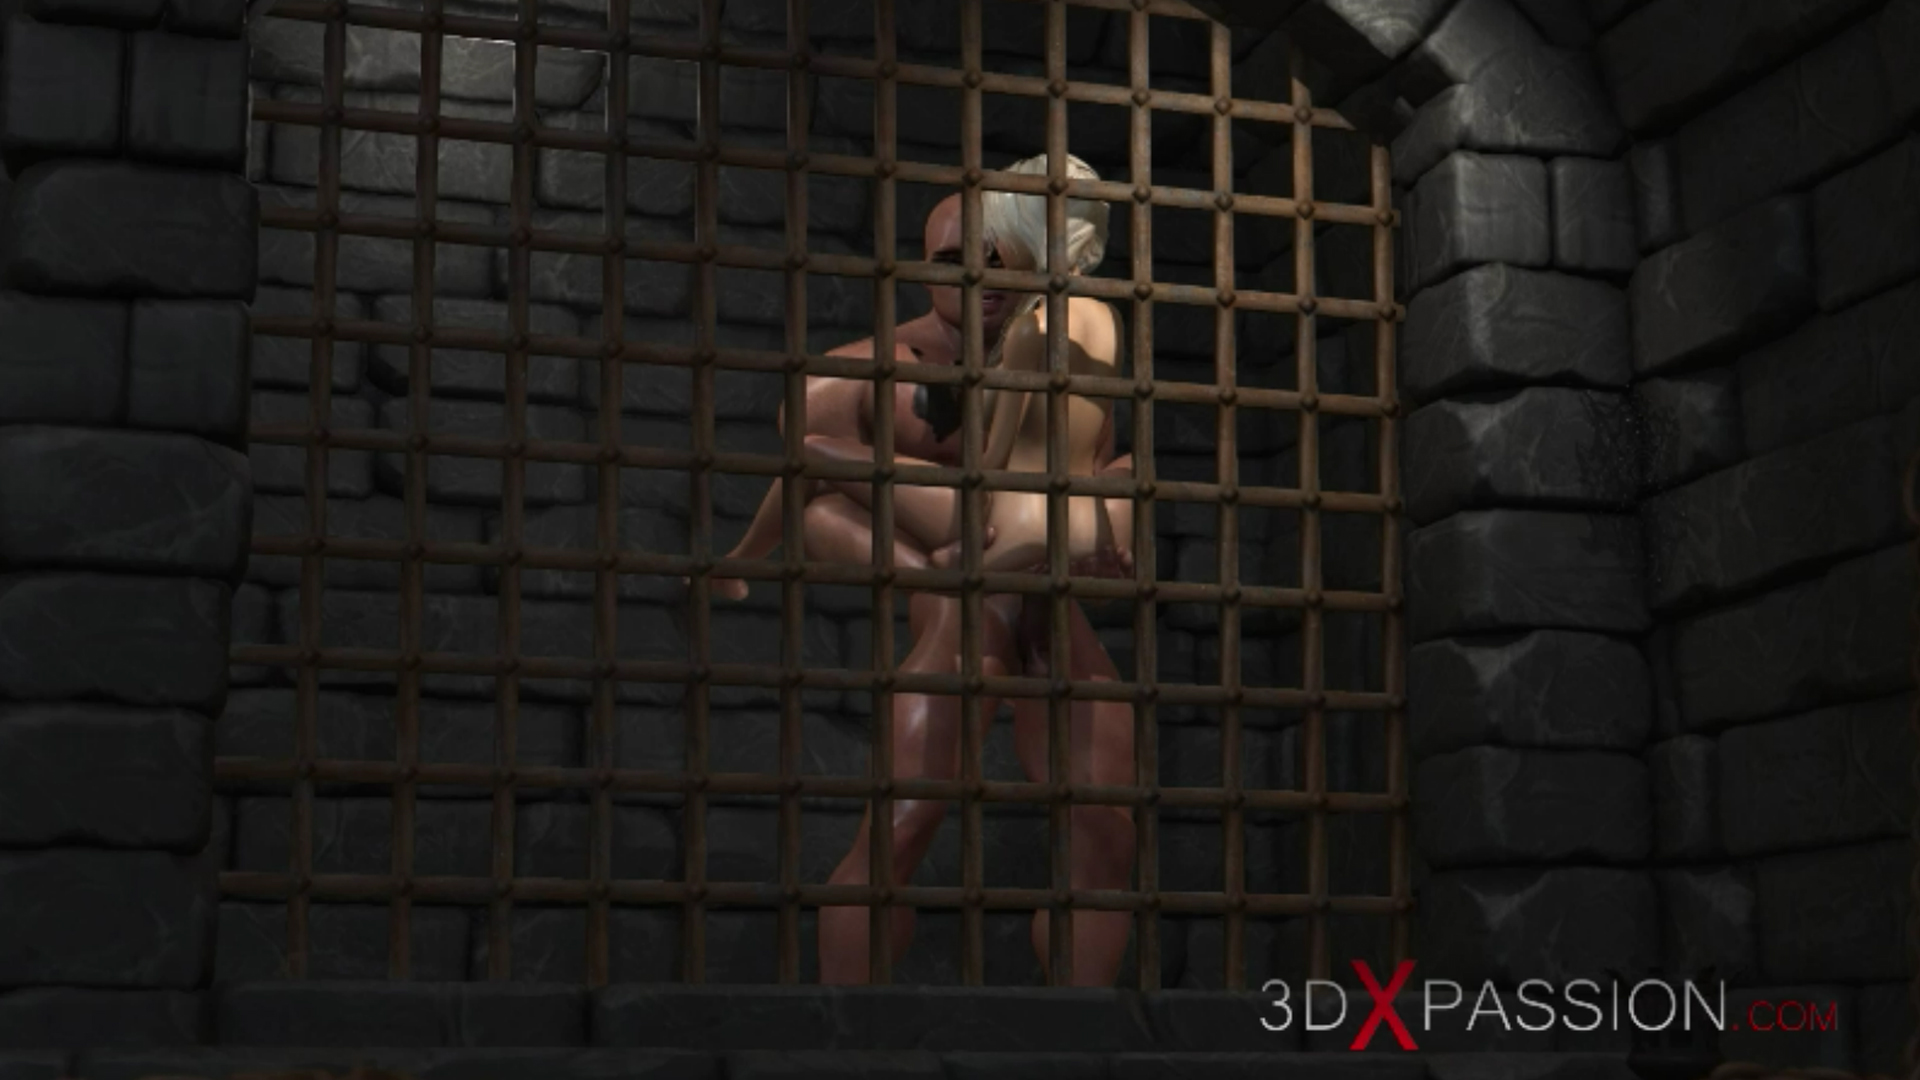 Young countess virgin standing fuck big cock in dark prison